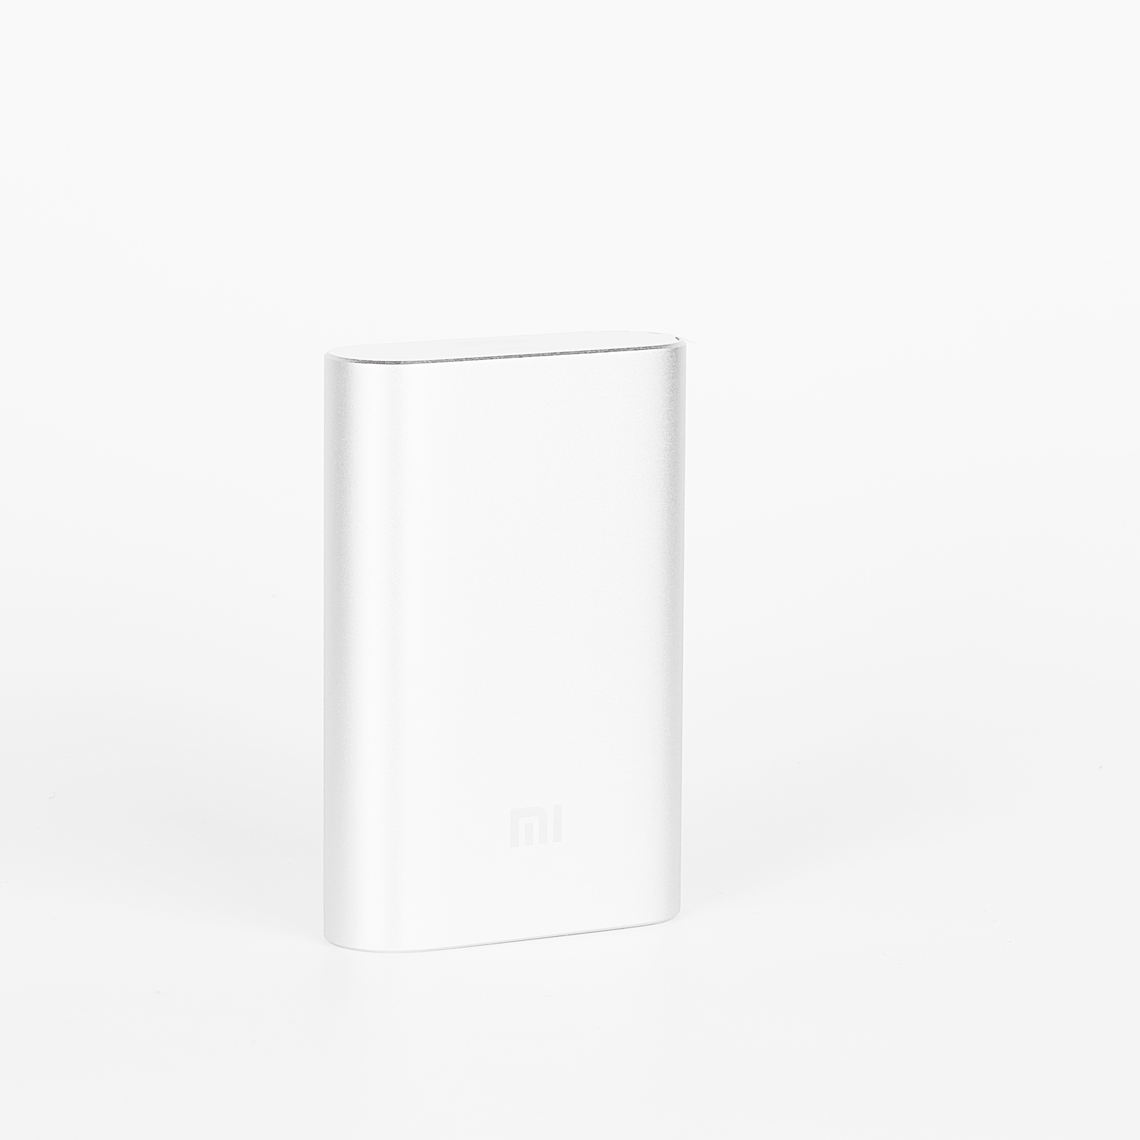 Xiaomi Mi Powerbank 10000